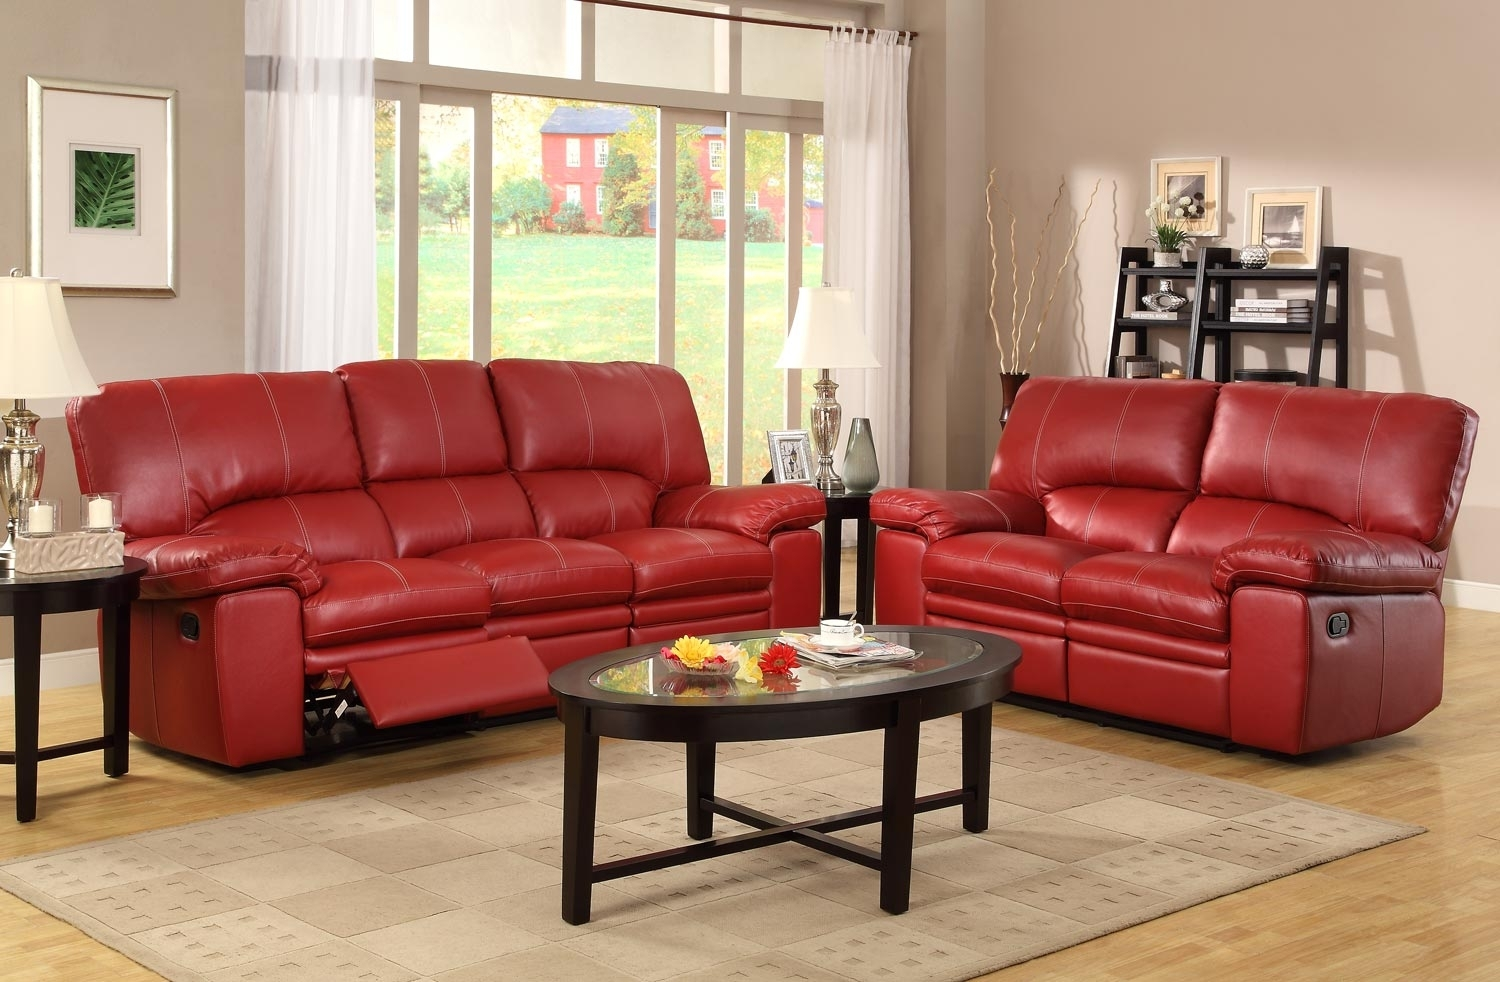 ashley red leather sofa light tan chesterfield 10 top reclining sofas and loveseats ideas